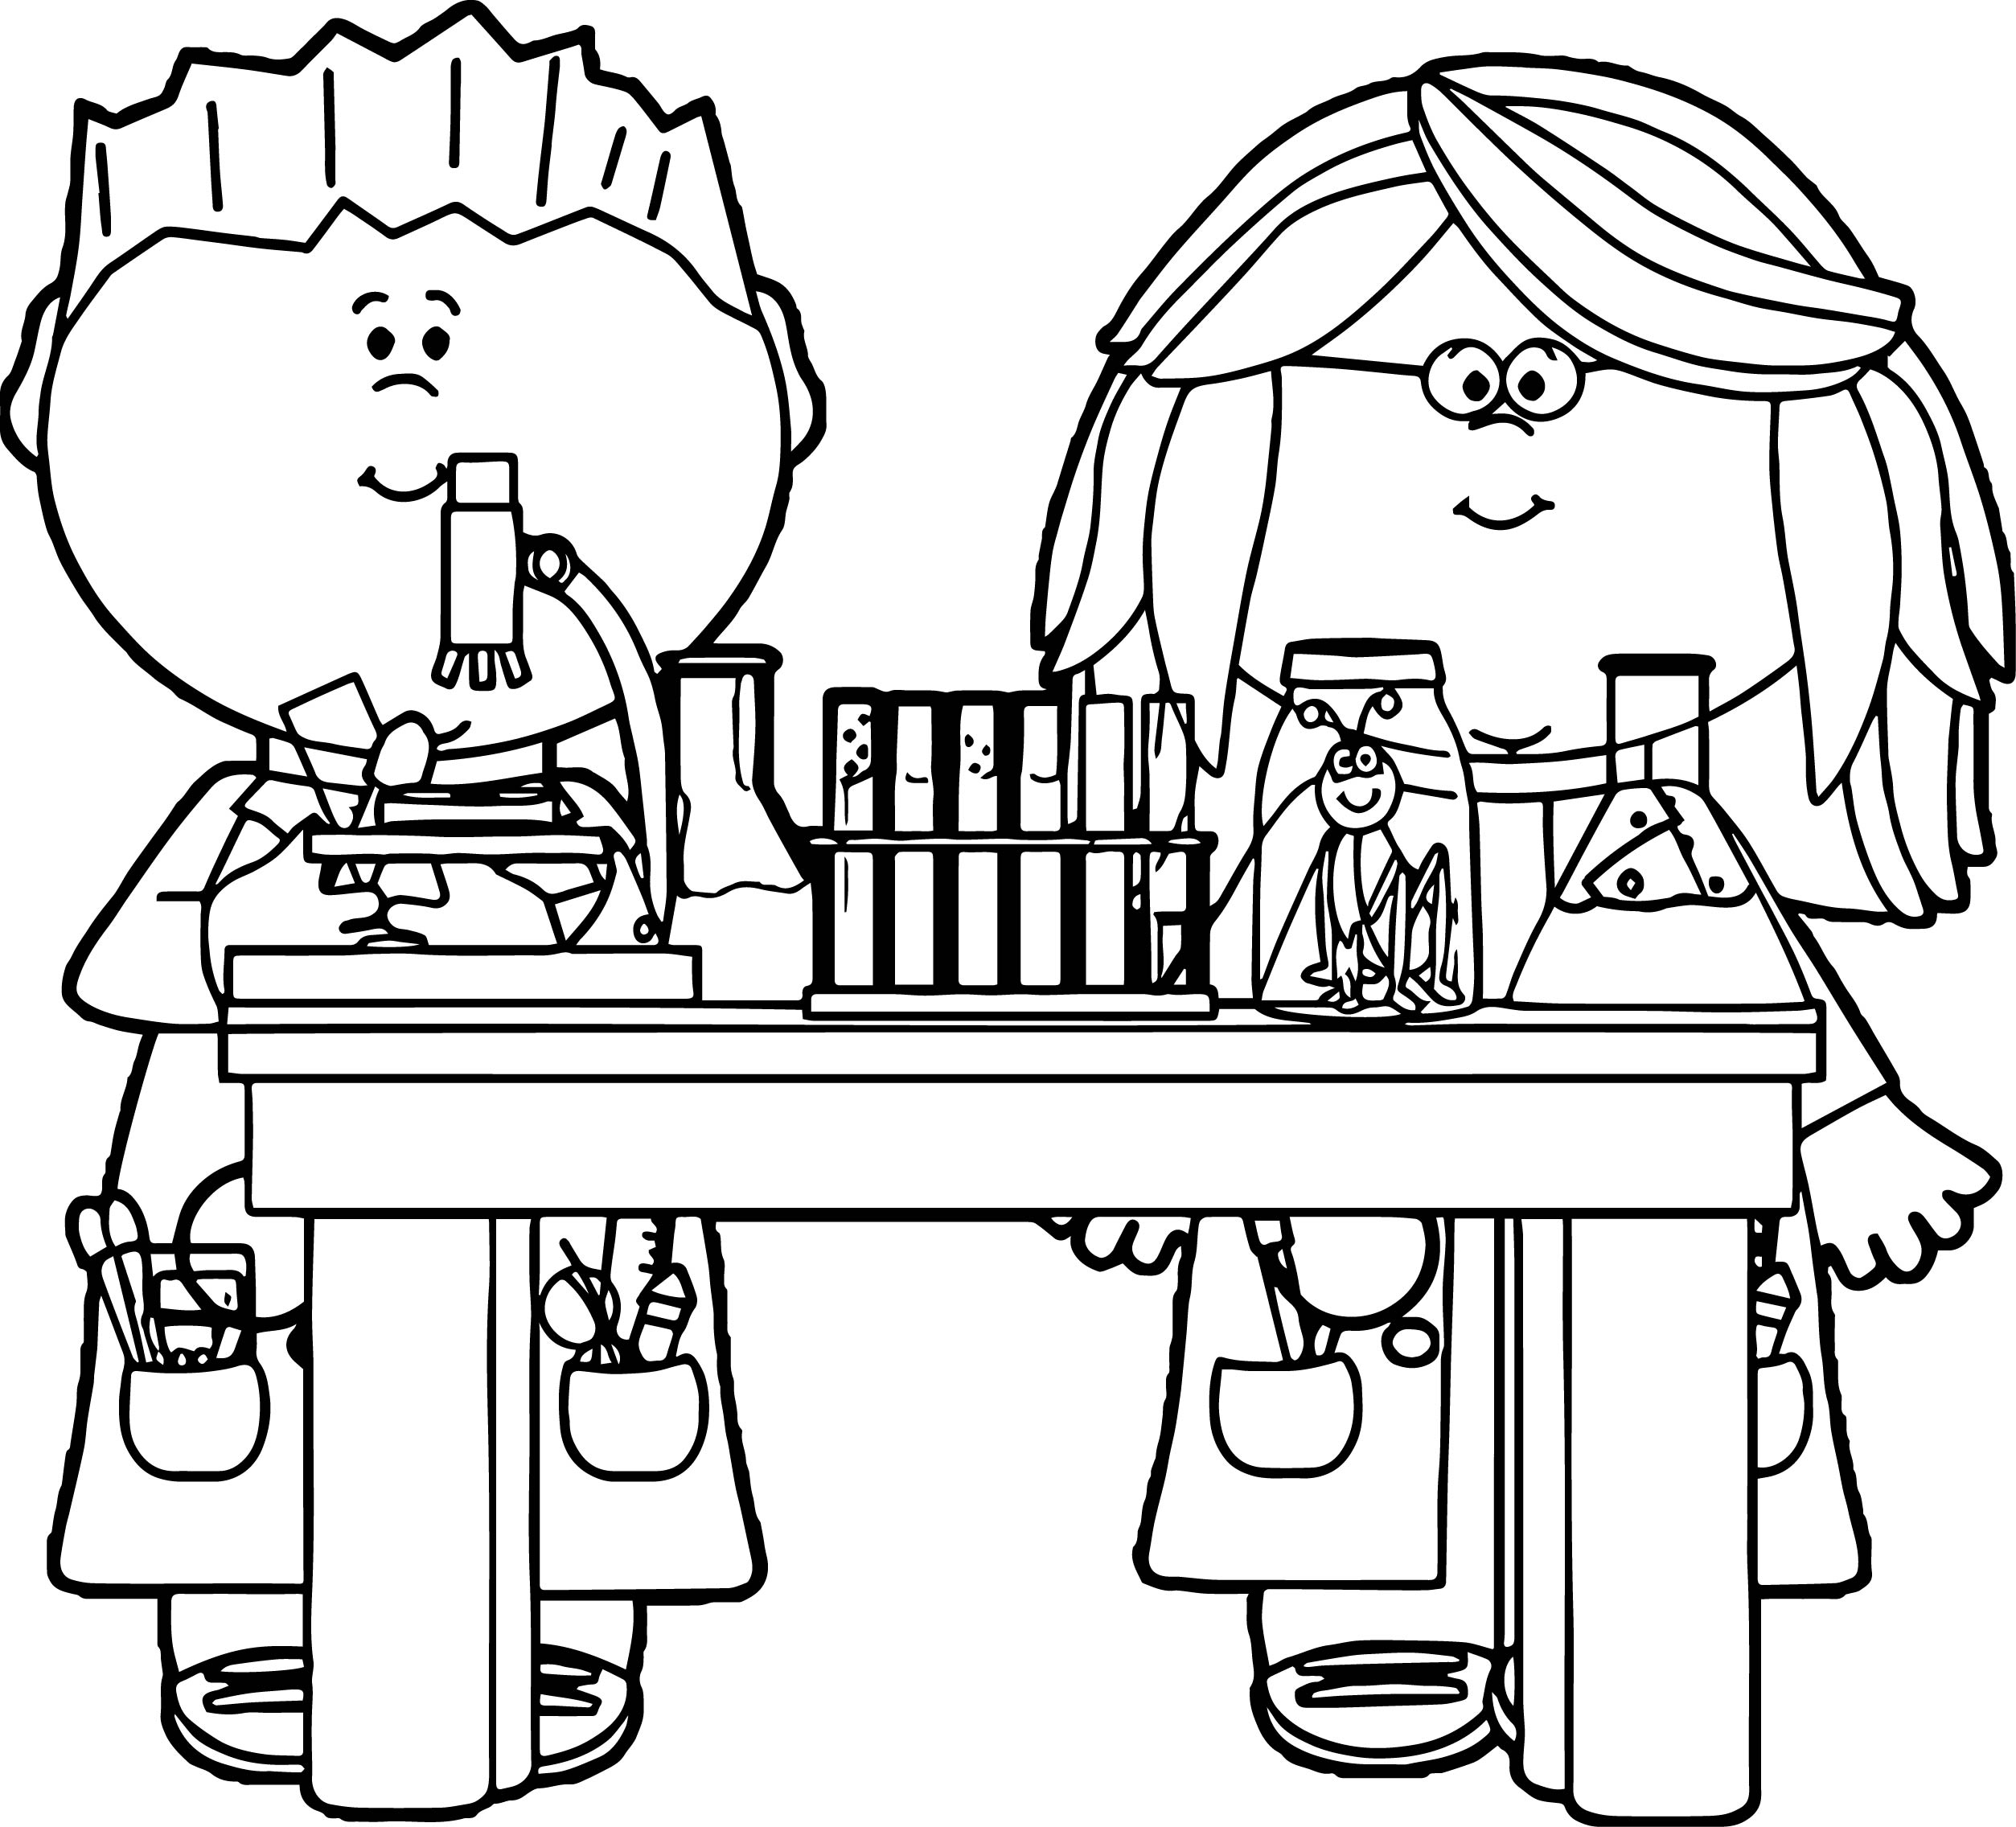 science coloring pages for kid - photo#11